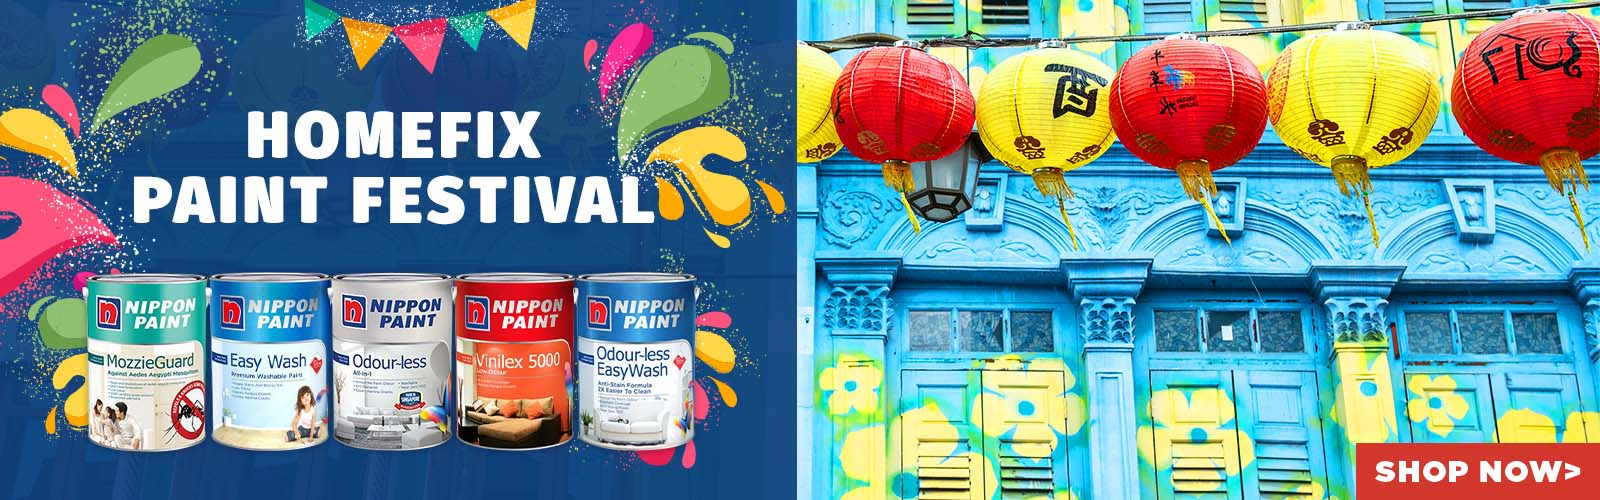 Nippon Paint Festival - discounts, gifts, free delivery on all nippon paints